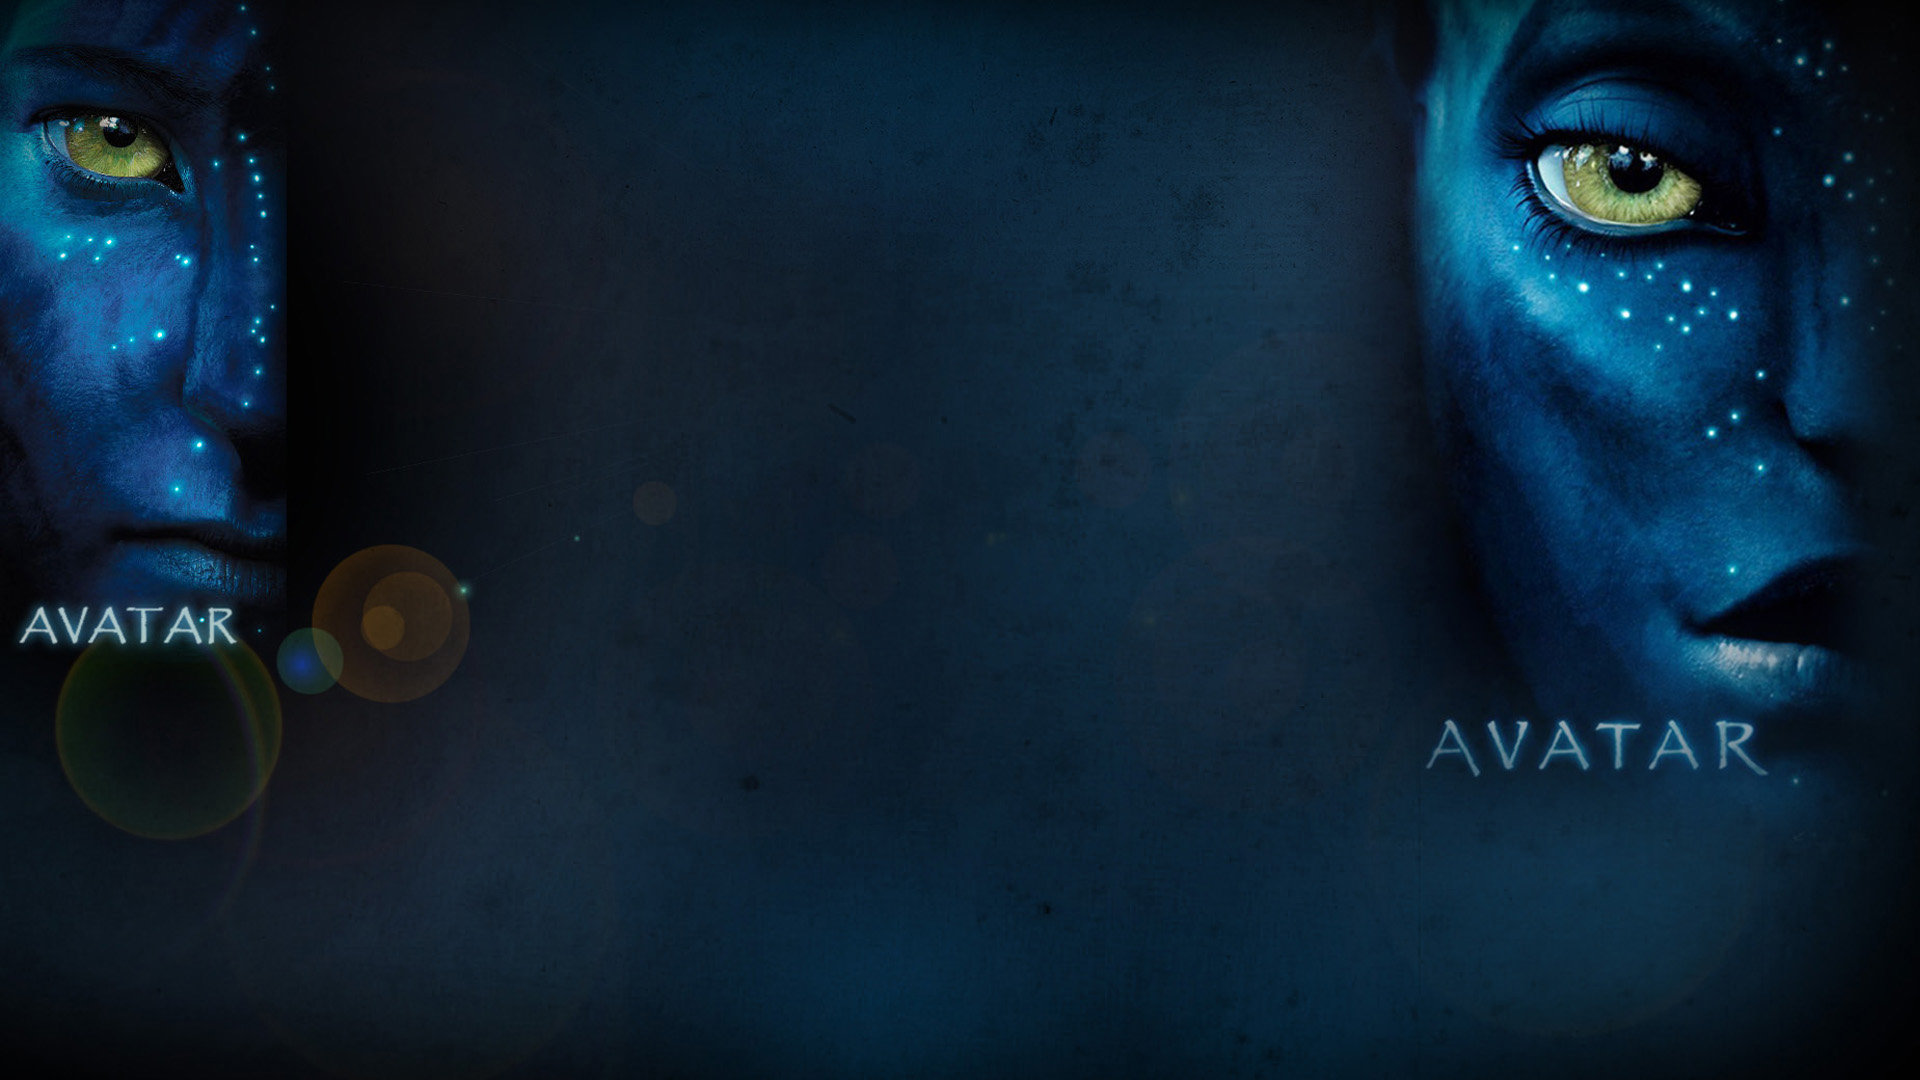 Avatar Movie Wallpapers Collection 6 1920 X 1080 Pixels